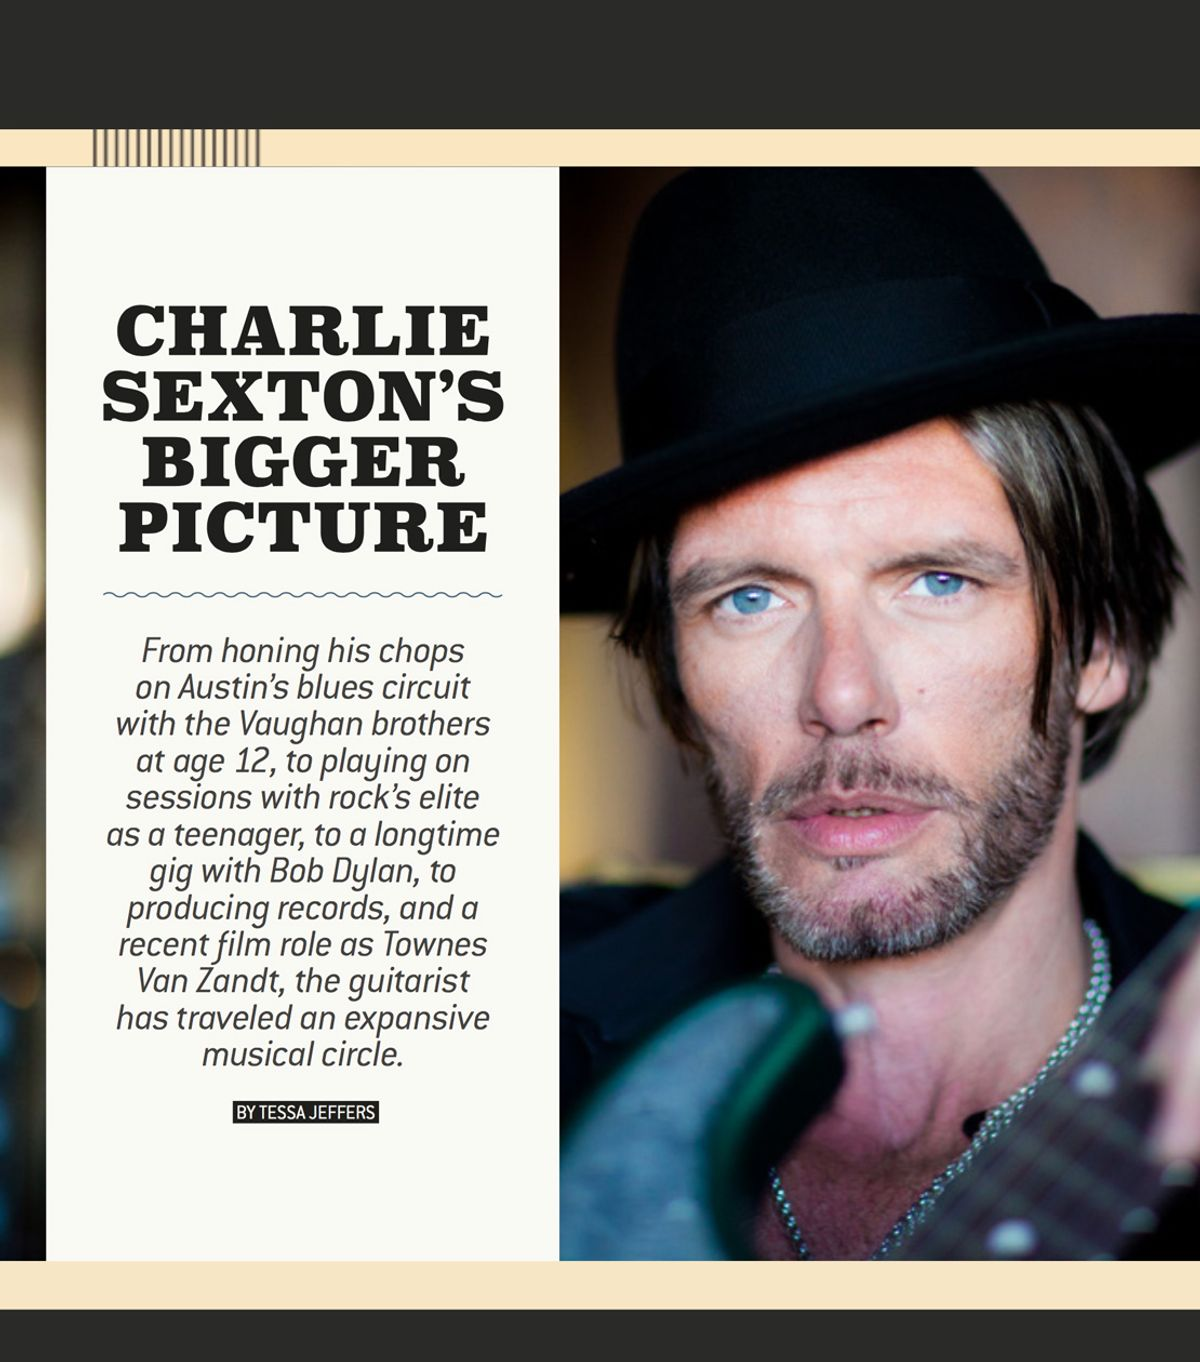 Charlie Sexton's Bigger Picture